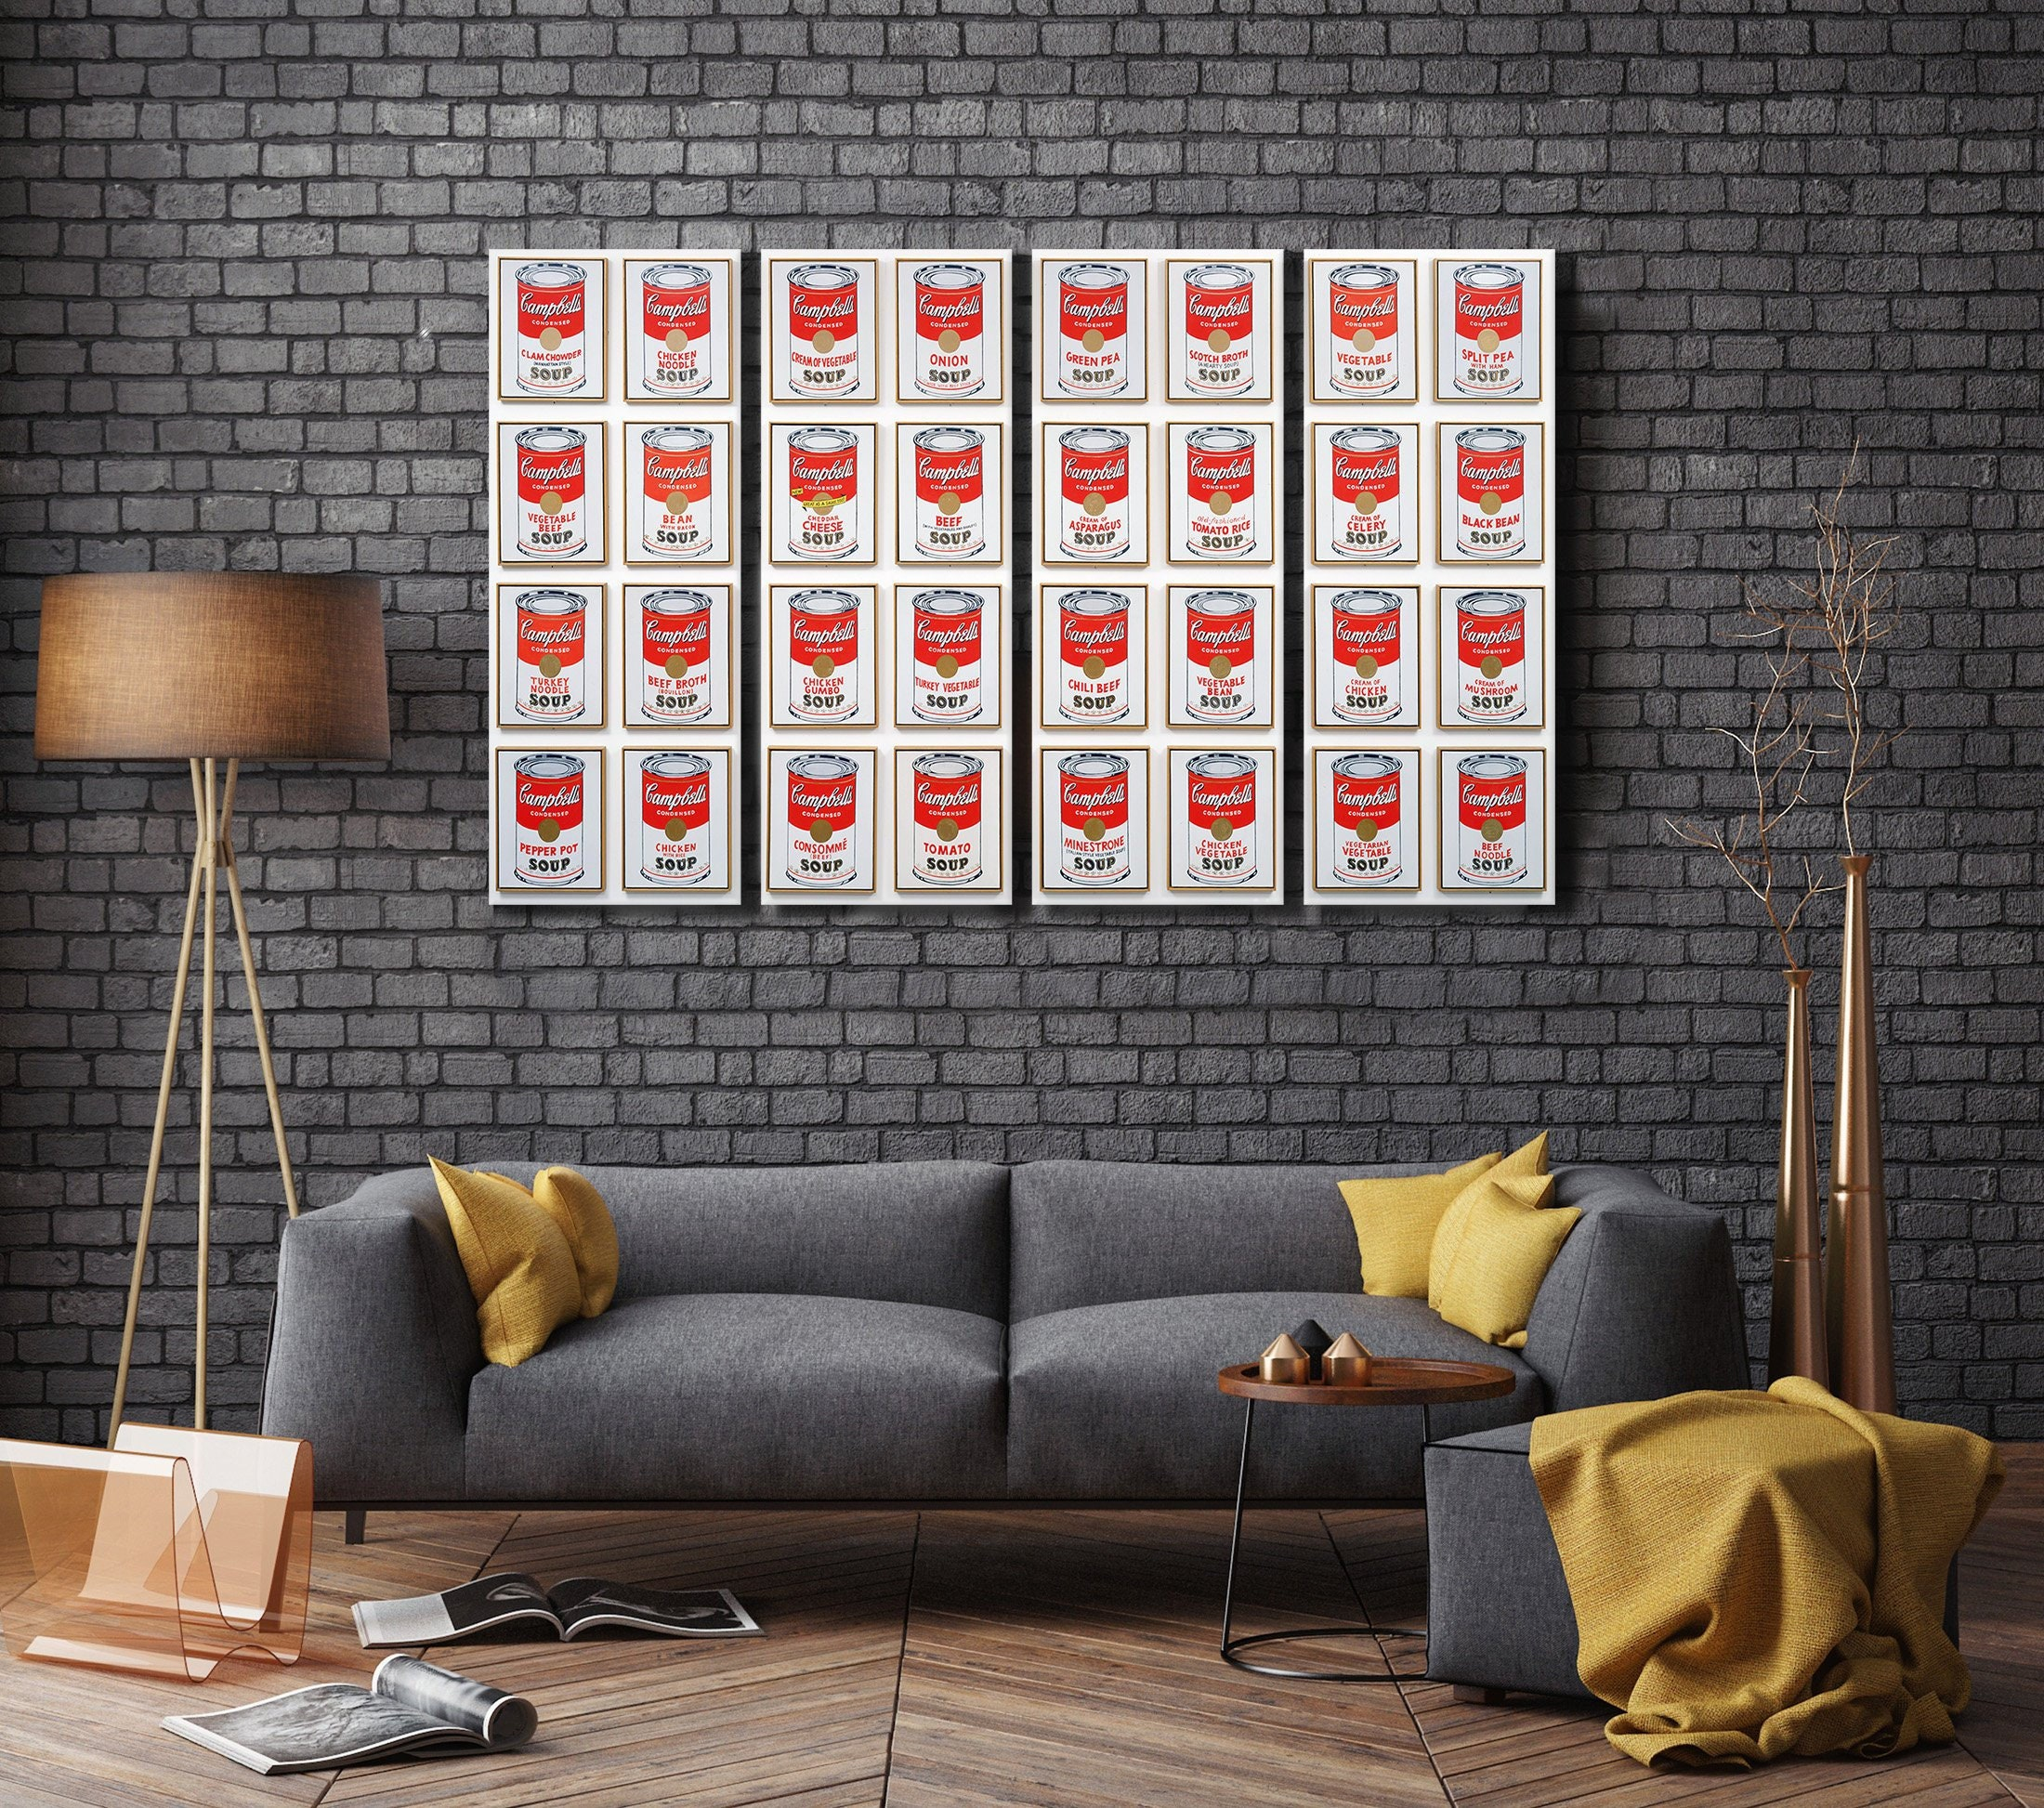 Campbells soup cans andy warhol leather print 1962 warhol art moma wall art pop art large wall art made in italy better than canvas